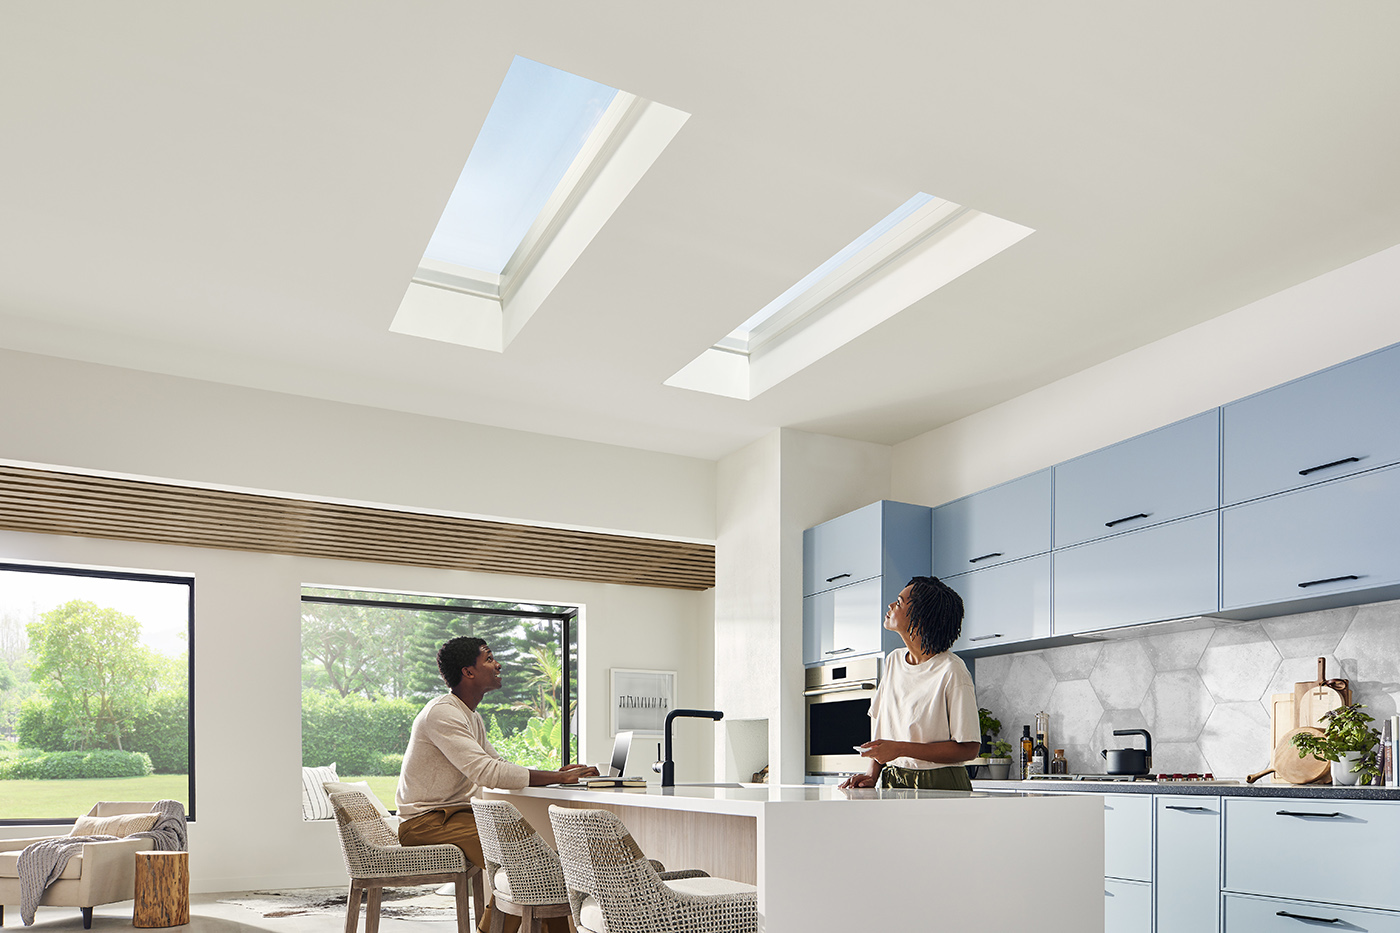 A man and woman in a modern kitchen featuring Marvin Awaken Skylights and Marvin Skycove.